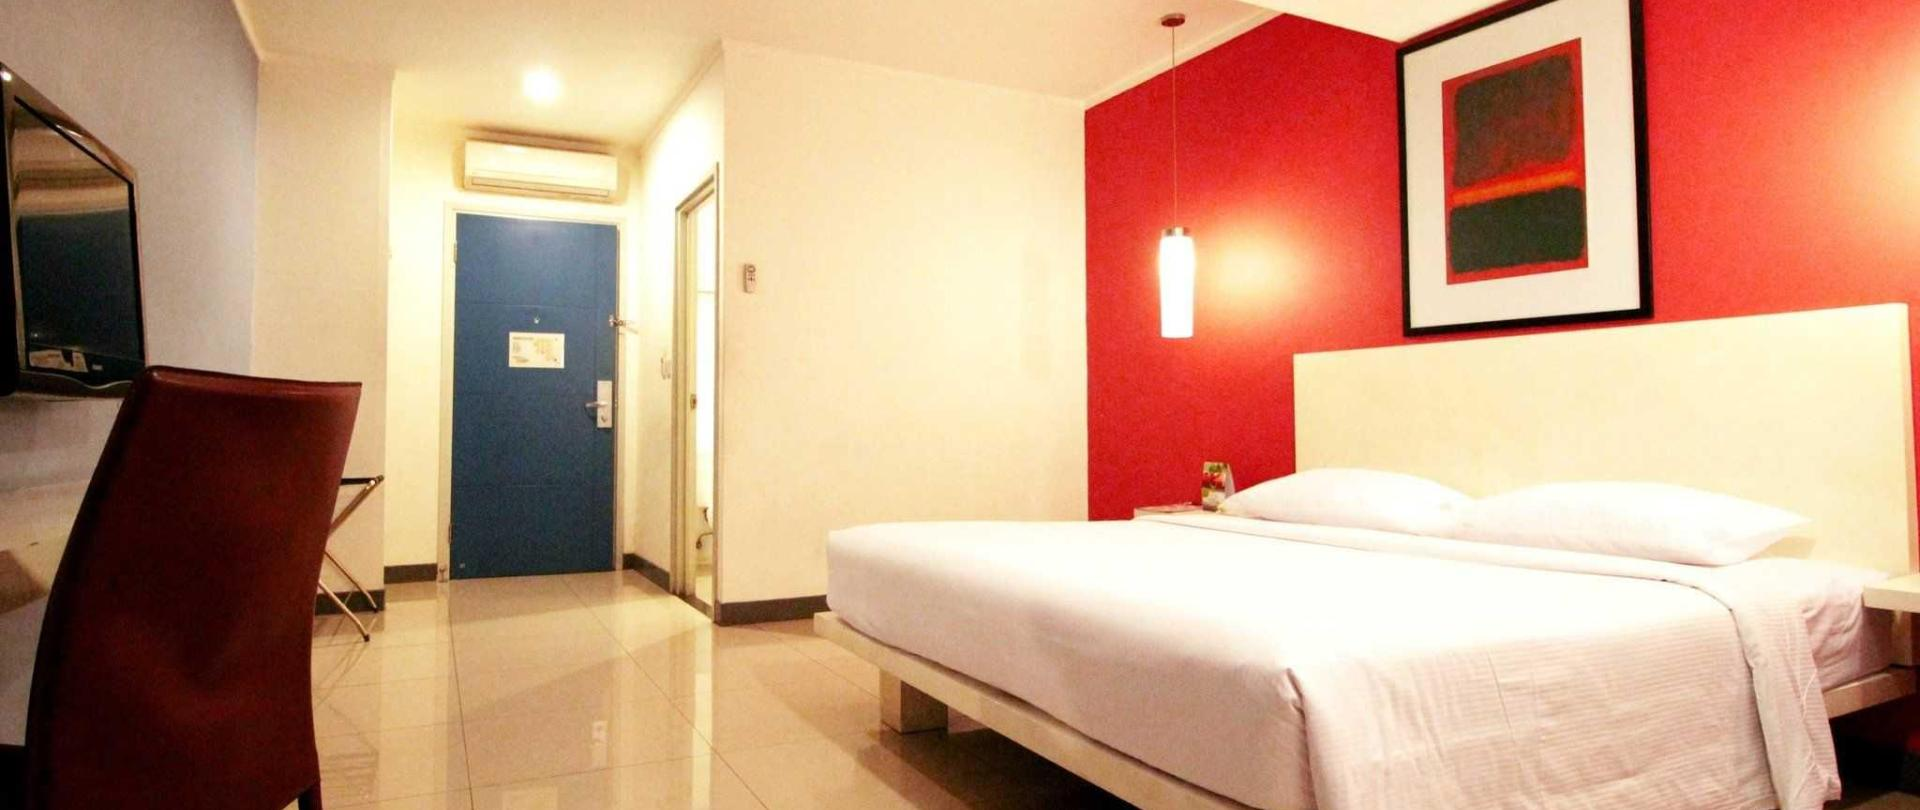 superior-double-room-plaza-hotel-glodok-edit.jpg